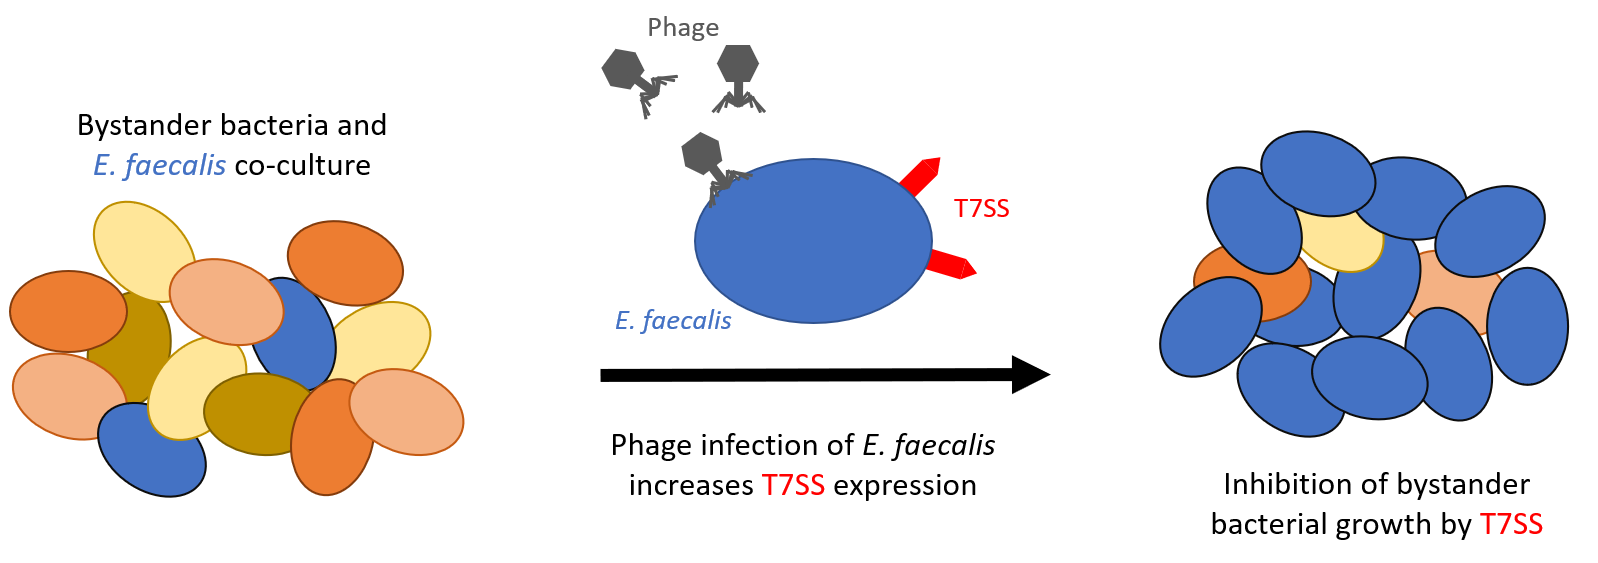 Phage infection mediates inhibition of bystander bacteria